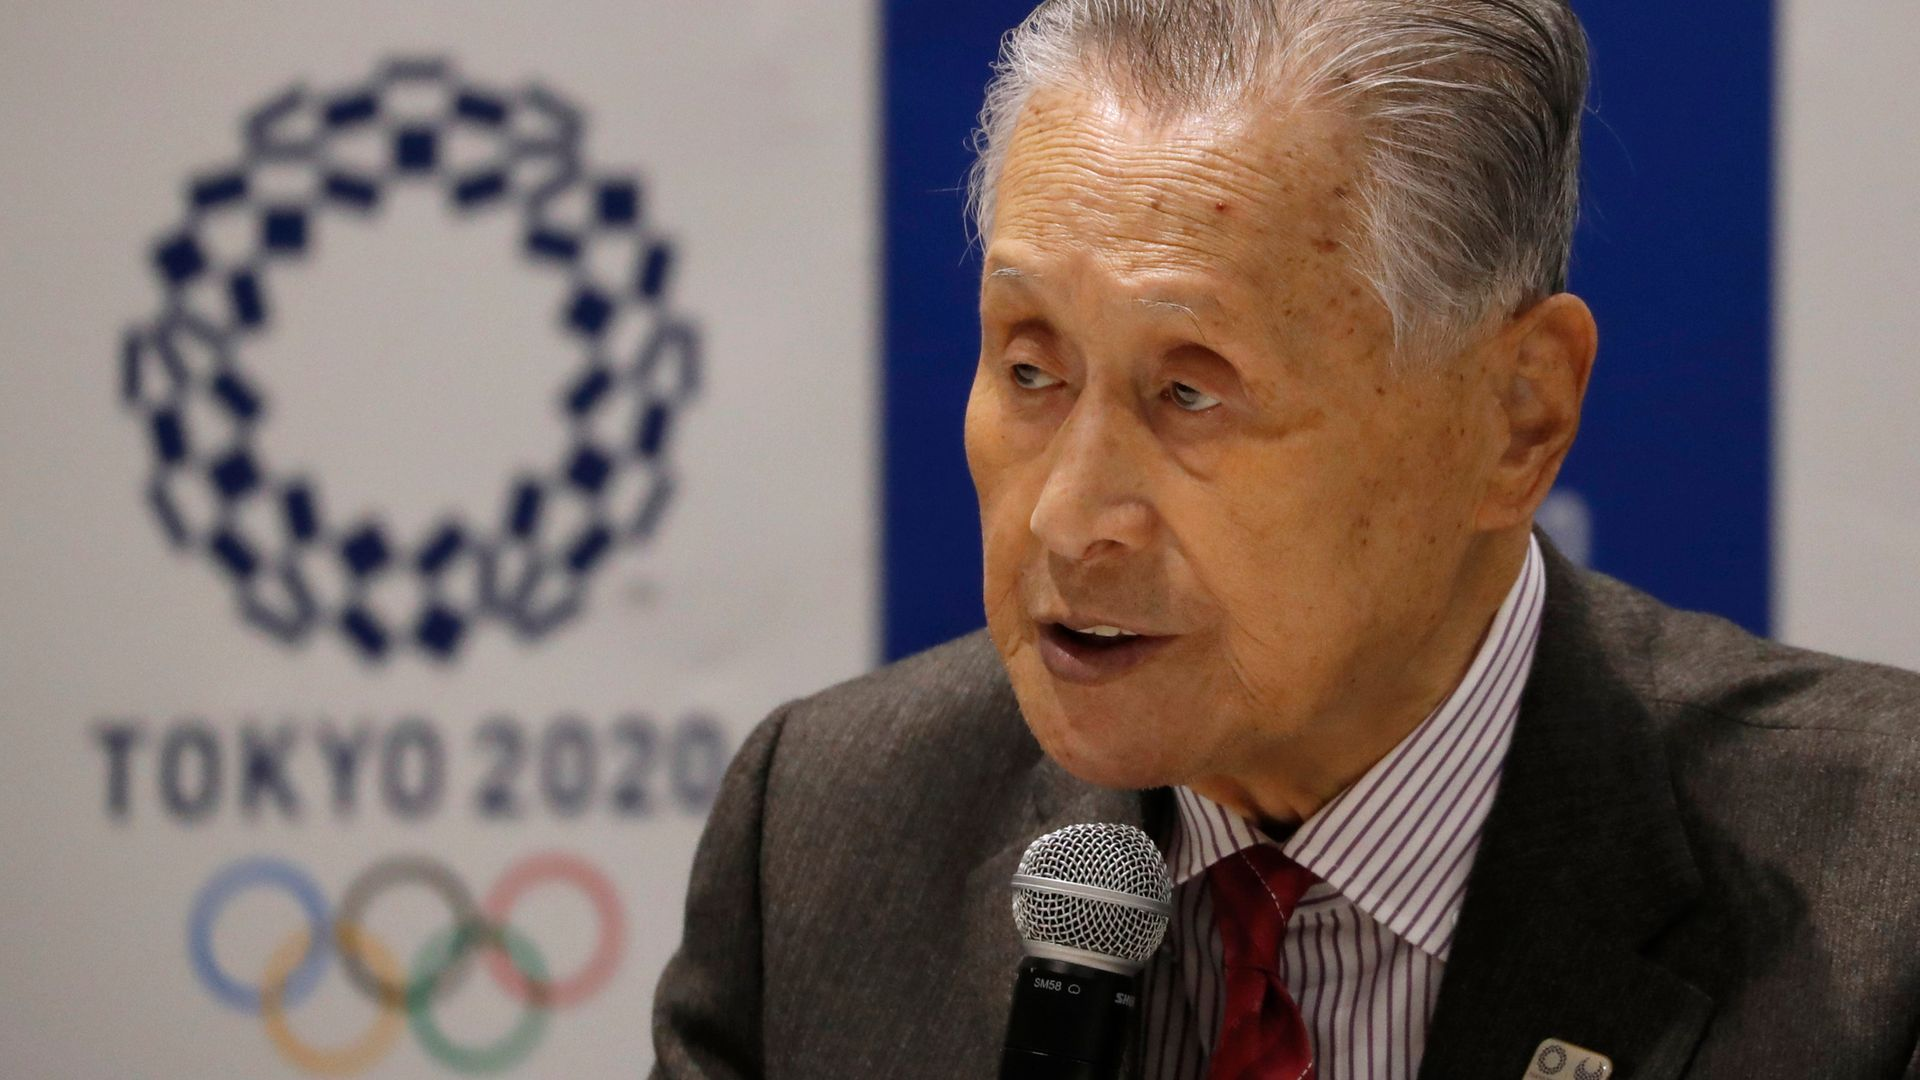 Japan 'will scrap' Olympics if not held in 2021